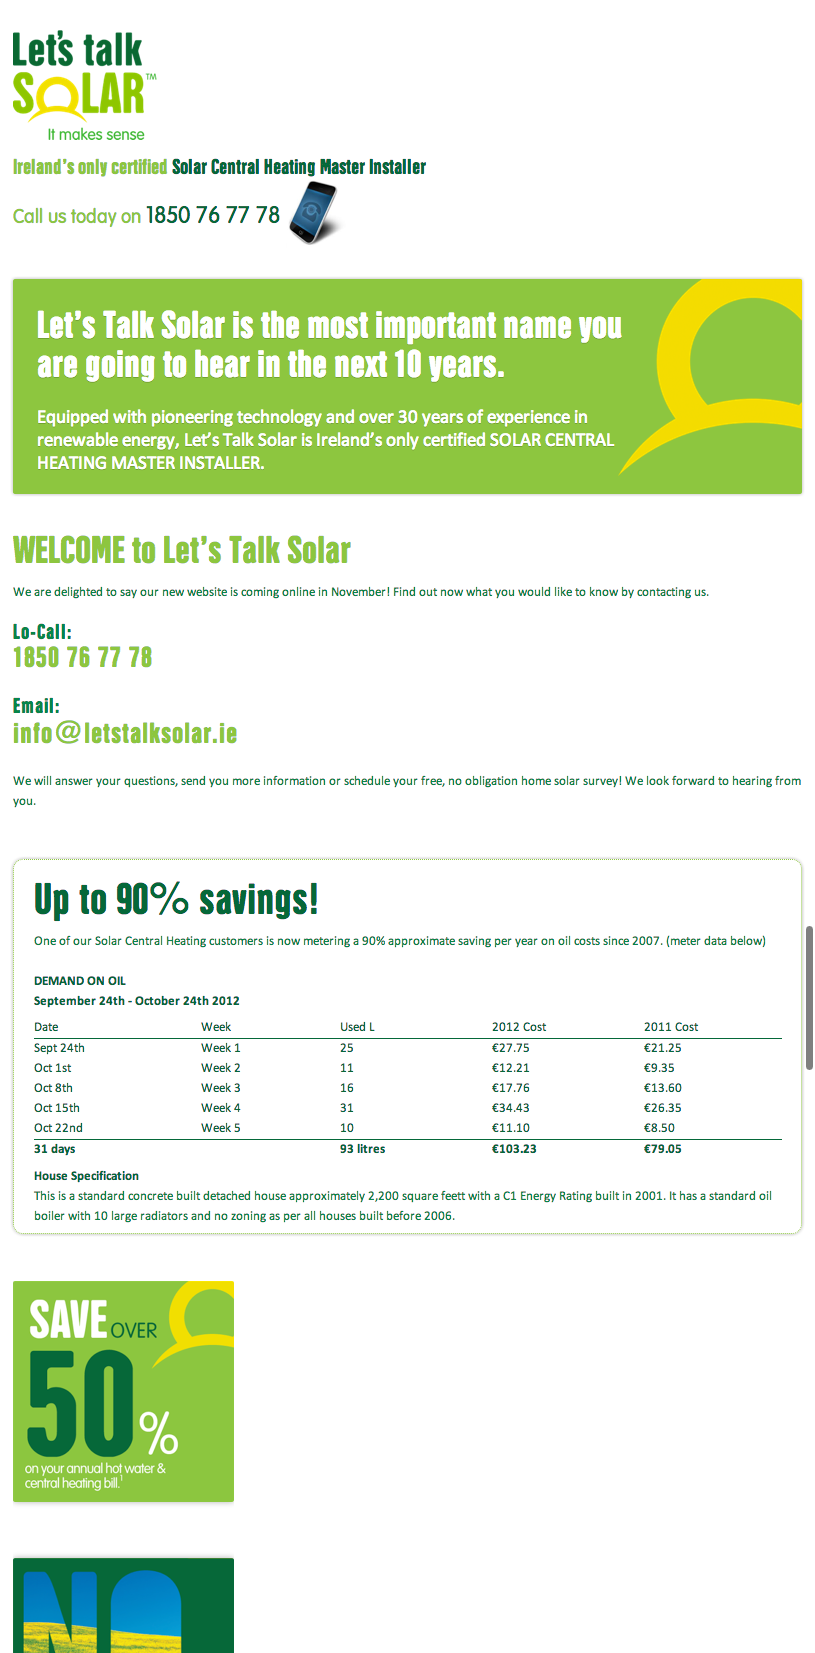 Screenshot of the Let's Talk Solar website without any layout, floating or widths